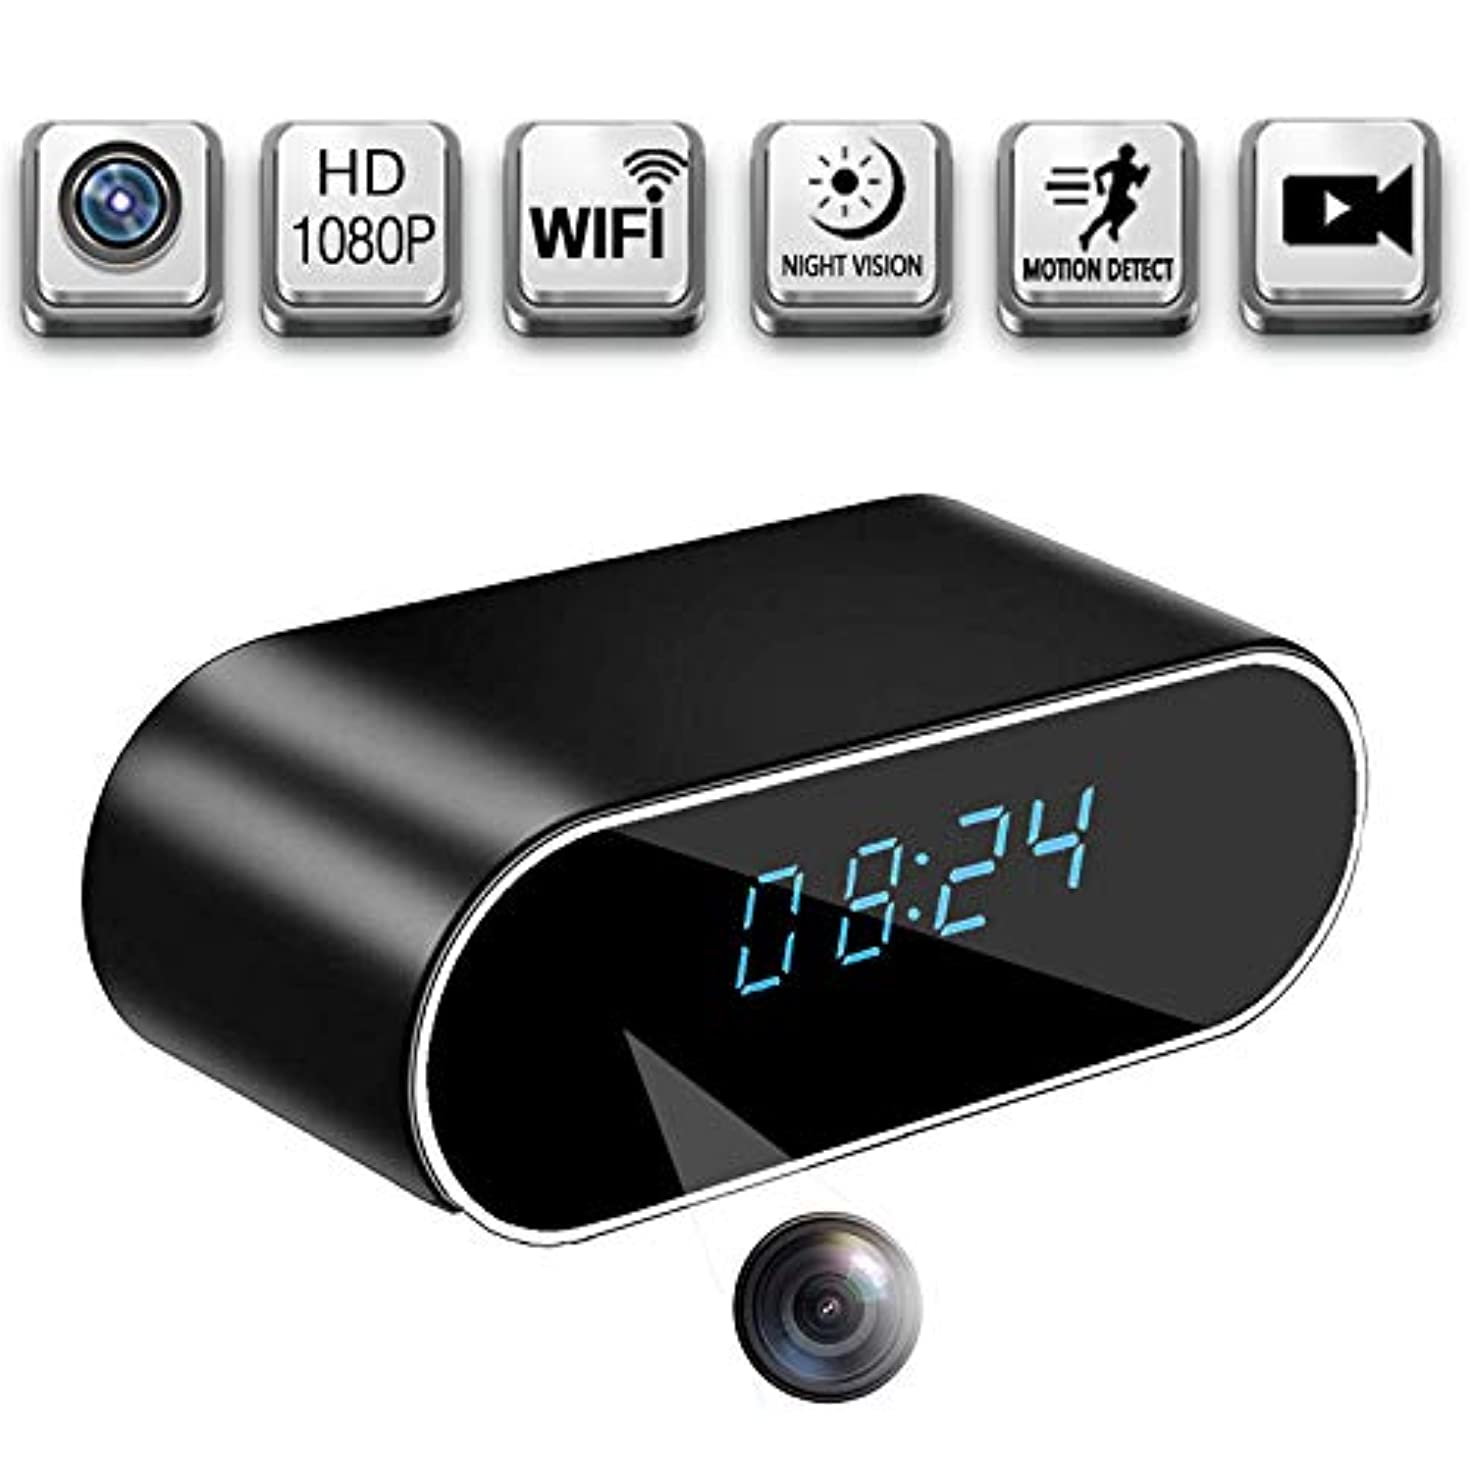 Spy Camera Clock Wireless Hidden Camera WiFi 1080P Motion Detection/ Loop Video Recording/ Wireless IP Camera Indoor Home Security Monitoring Nanny cam